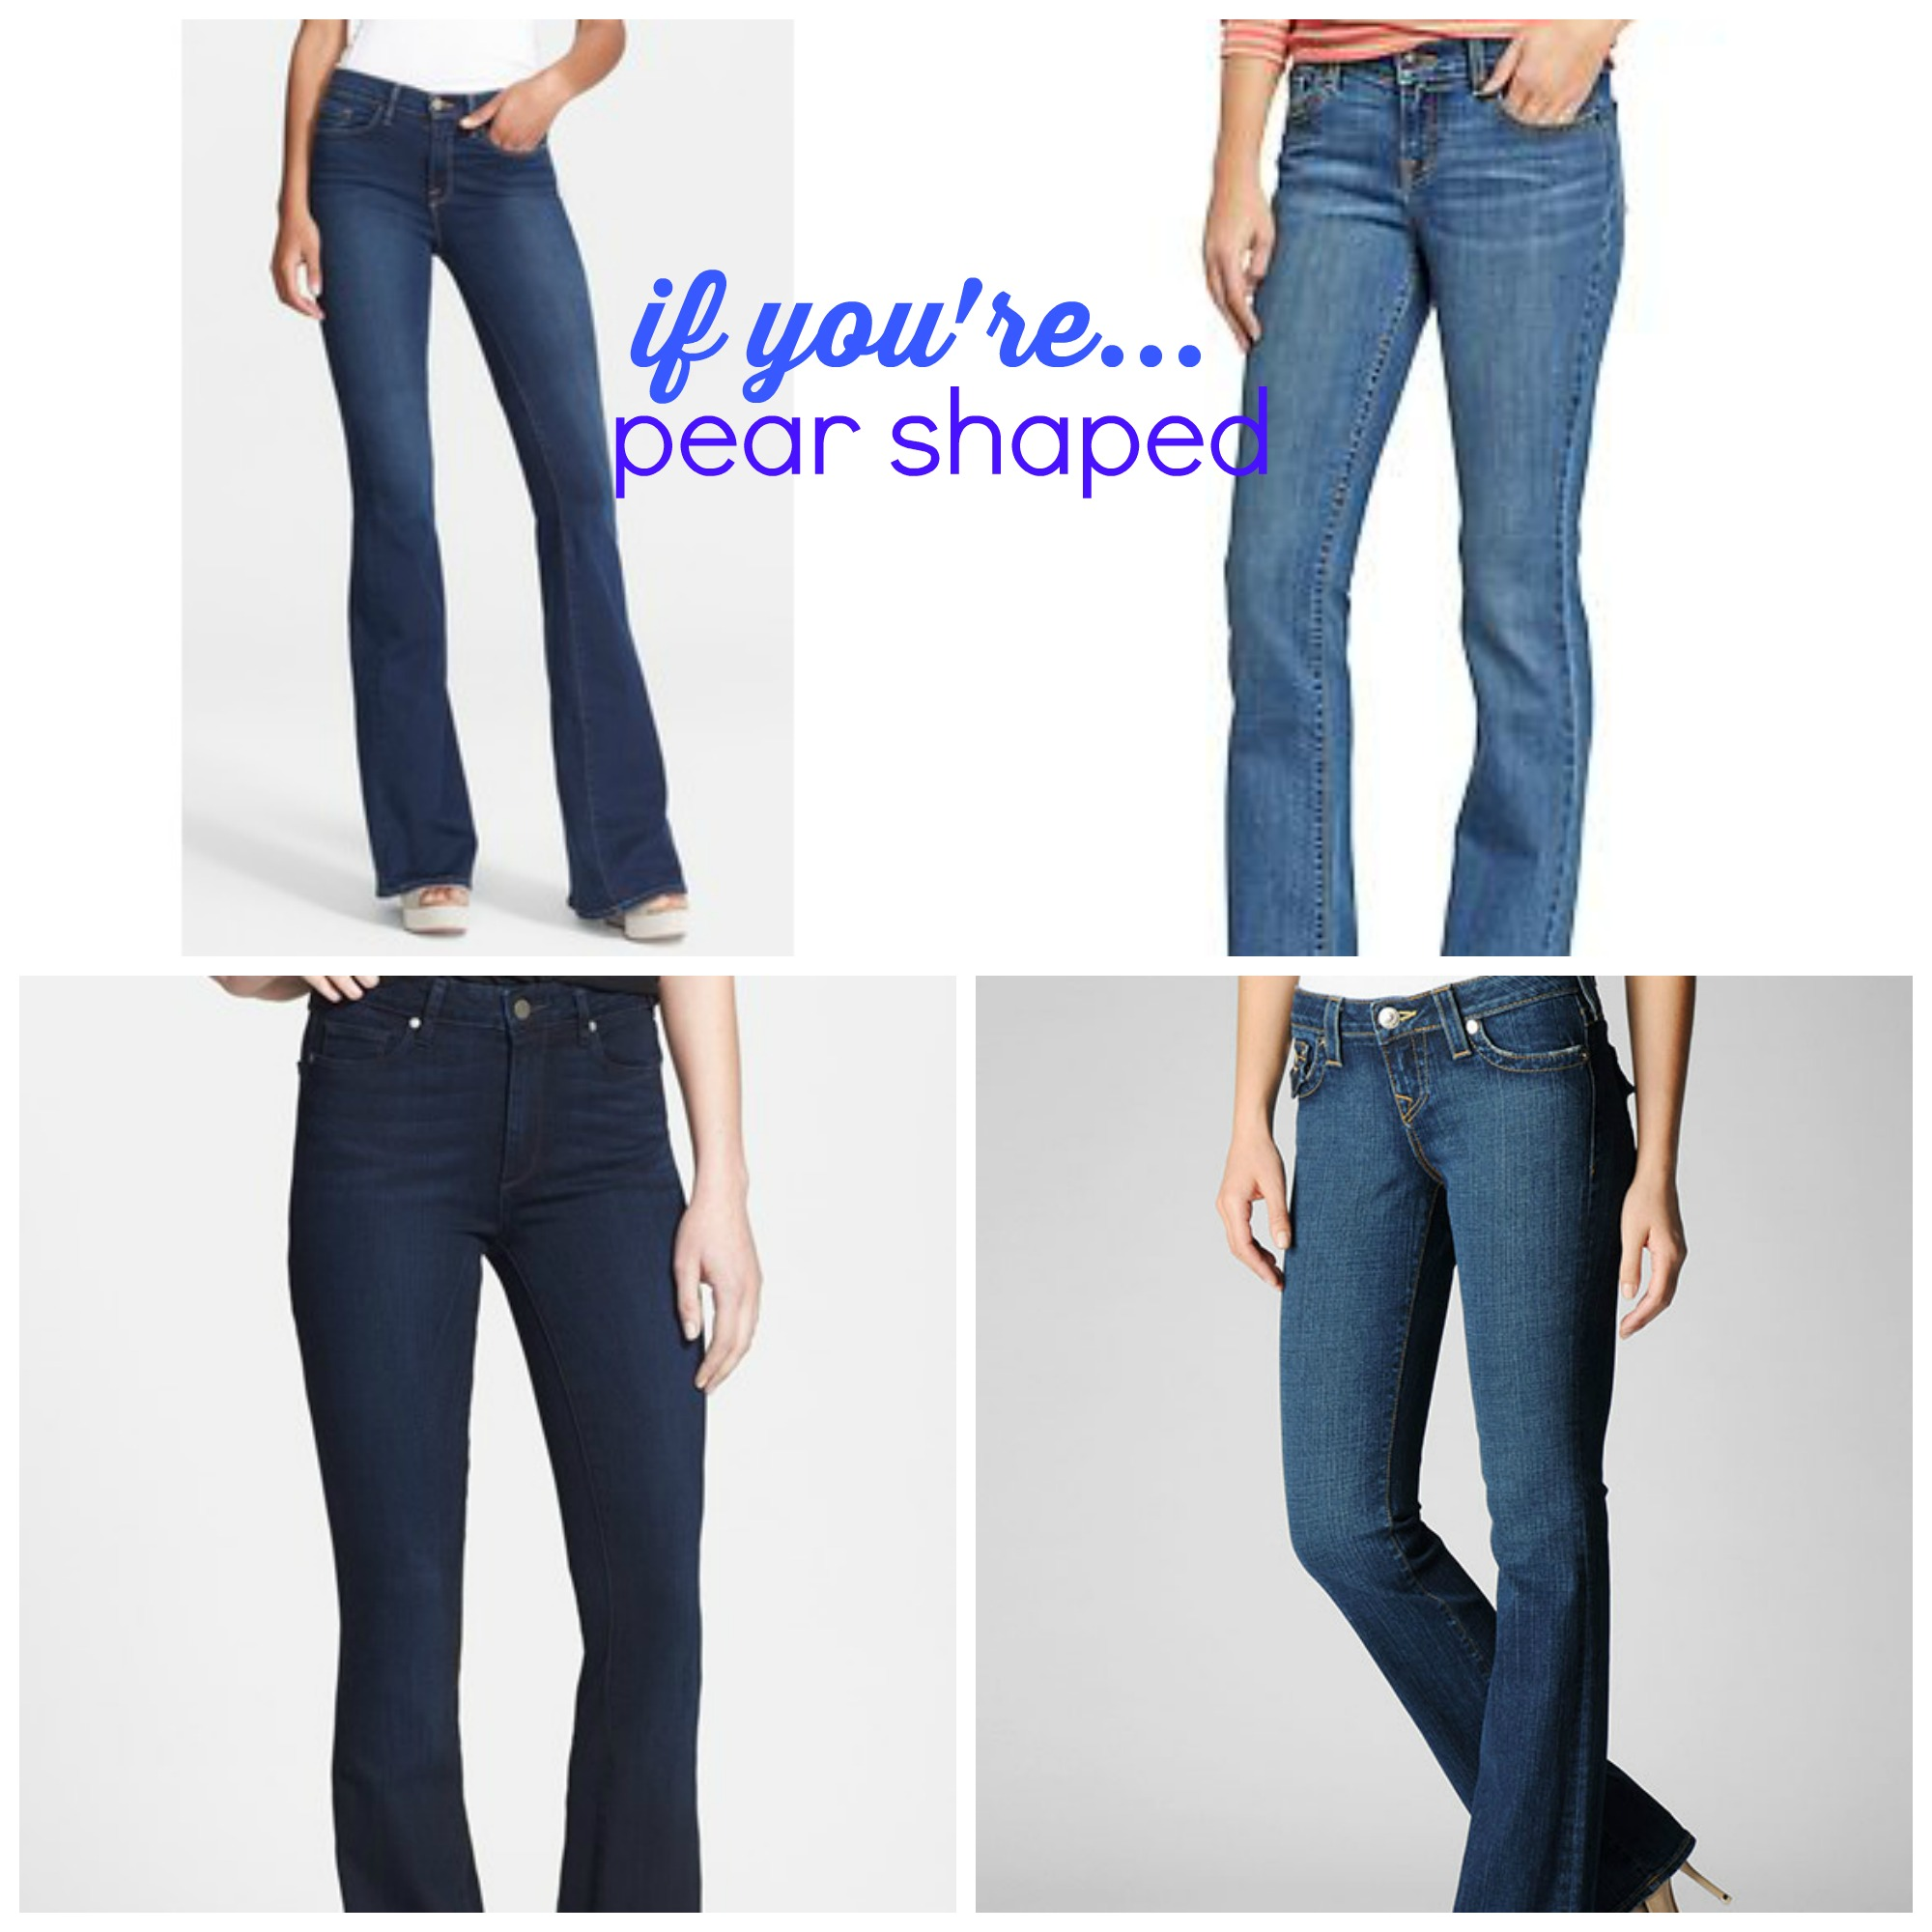 Fashion Fridays: The BEST Jeans For Your Body!